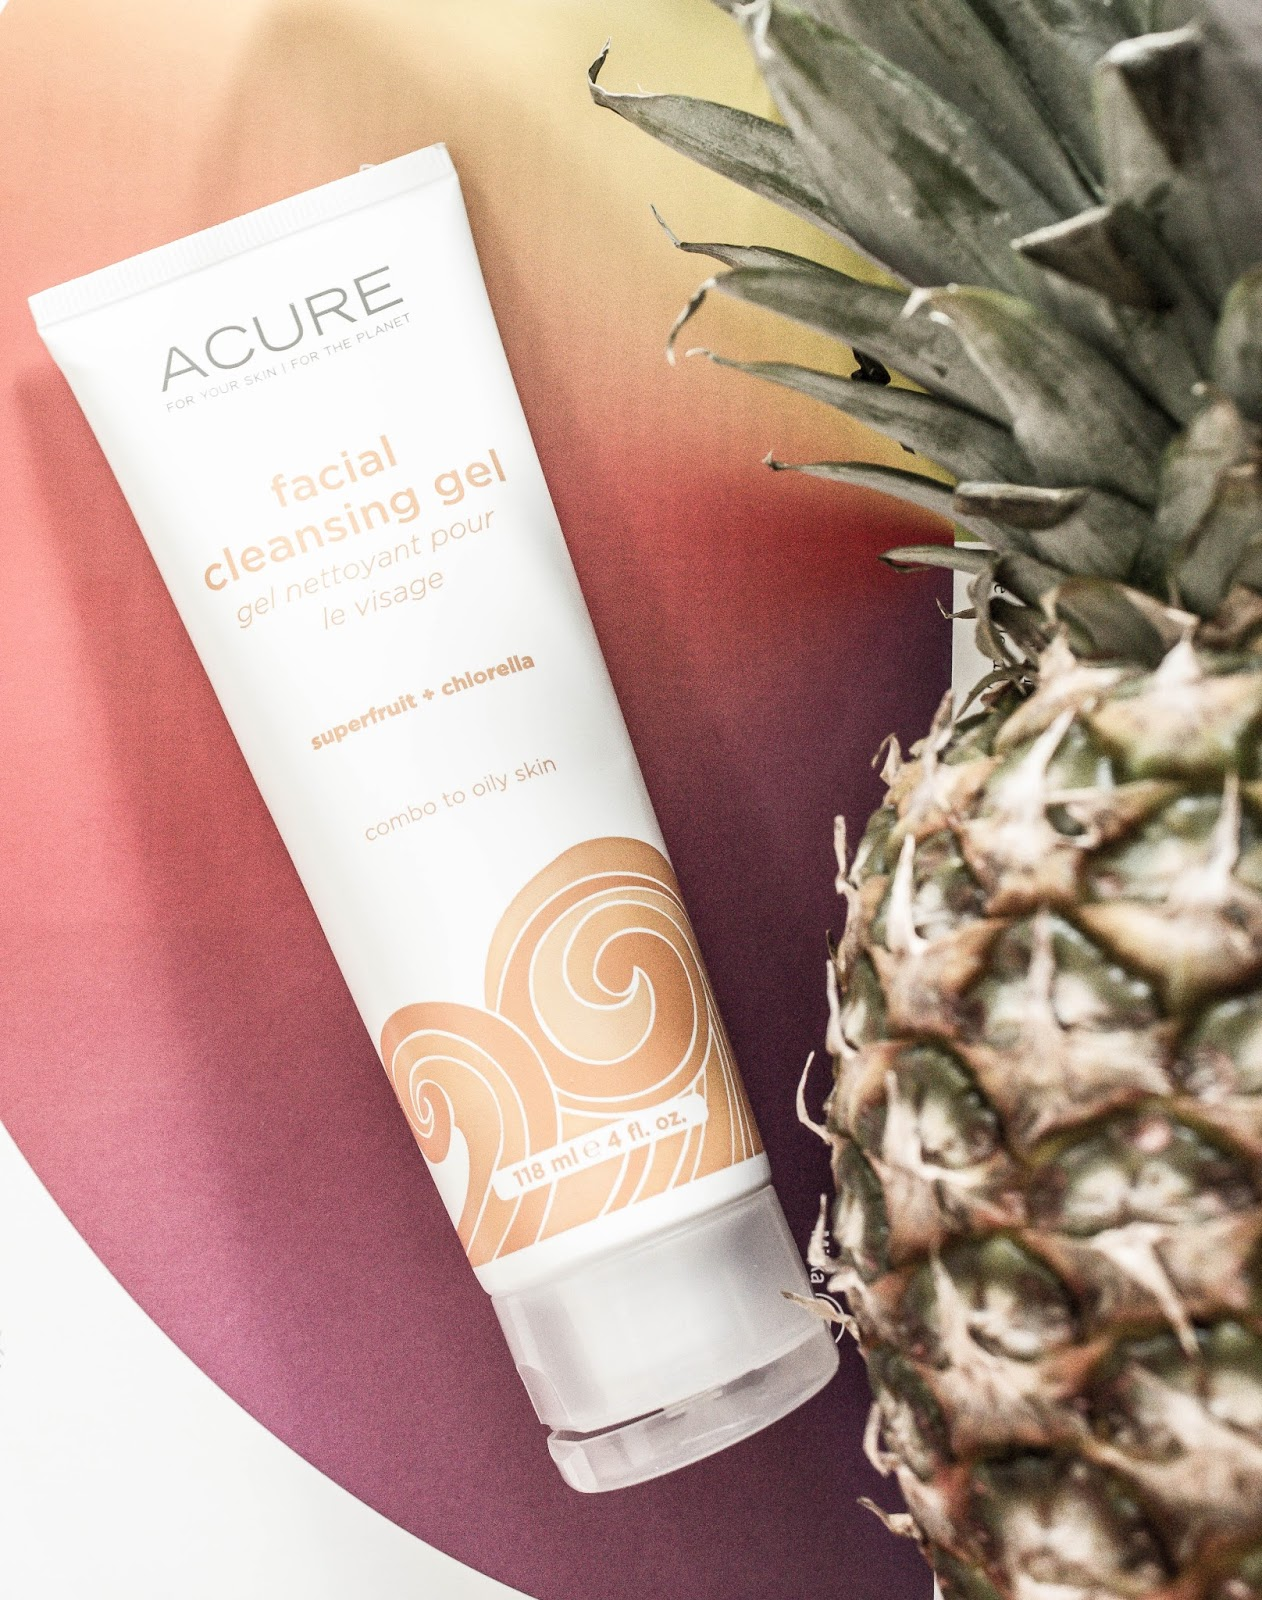 Acure Organics, Facial Cleansing Gel, SuperFruit + Chlorella Growth Factor review